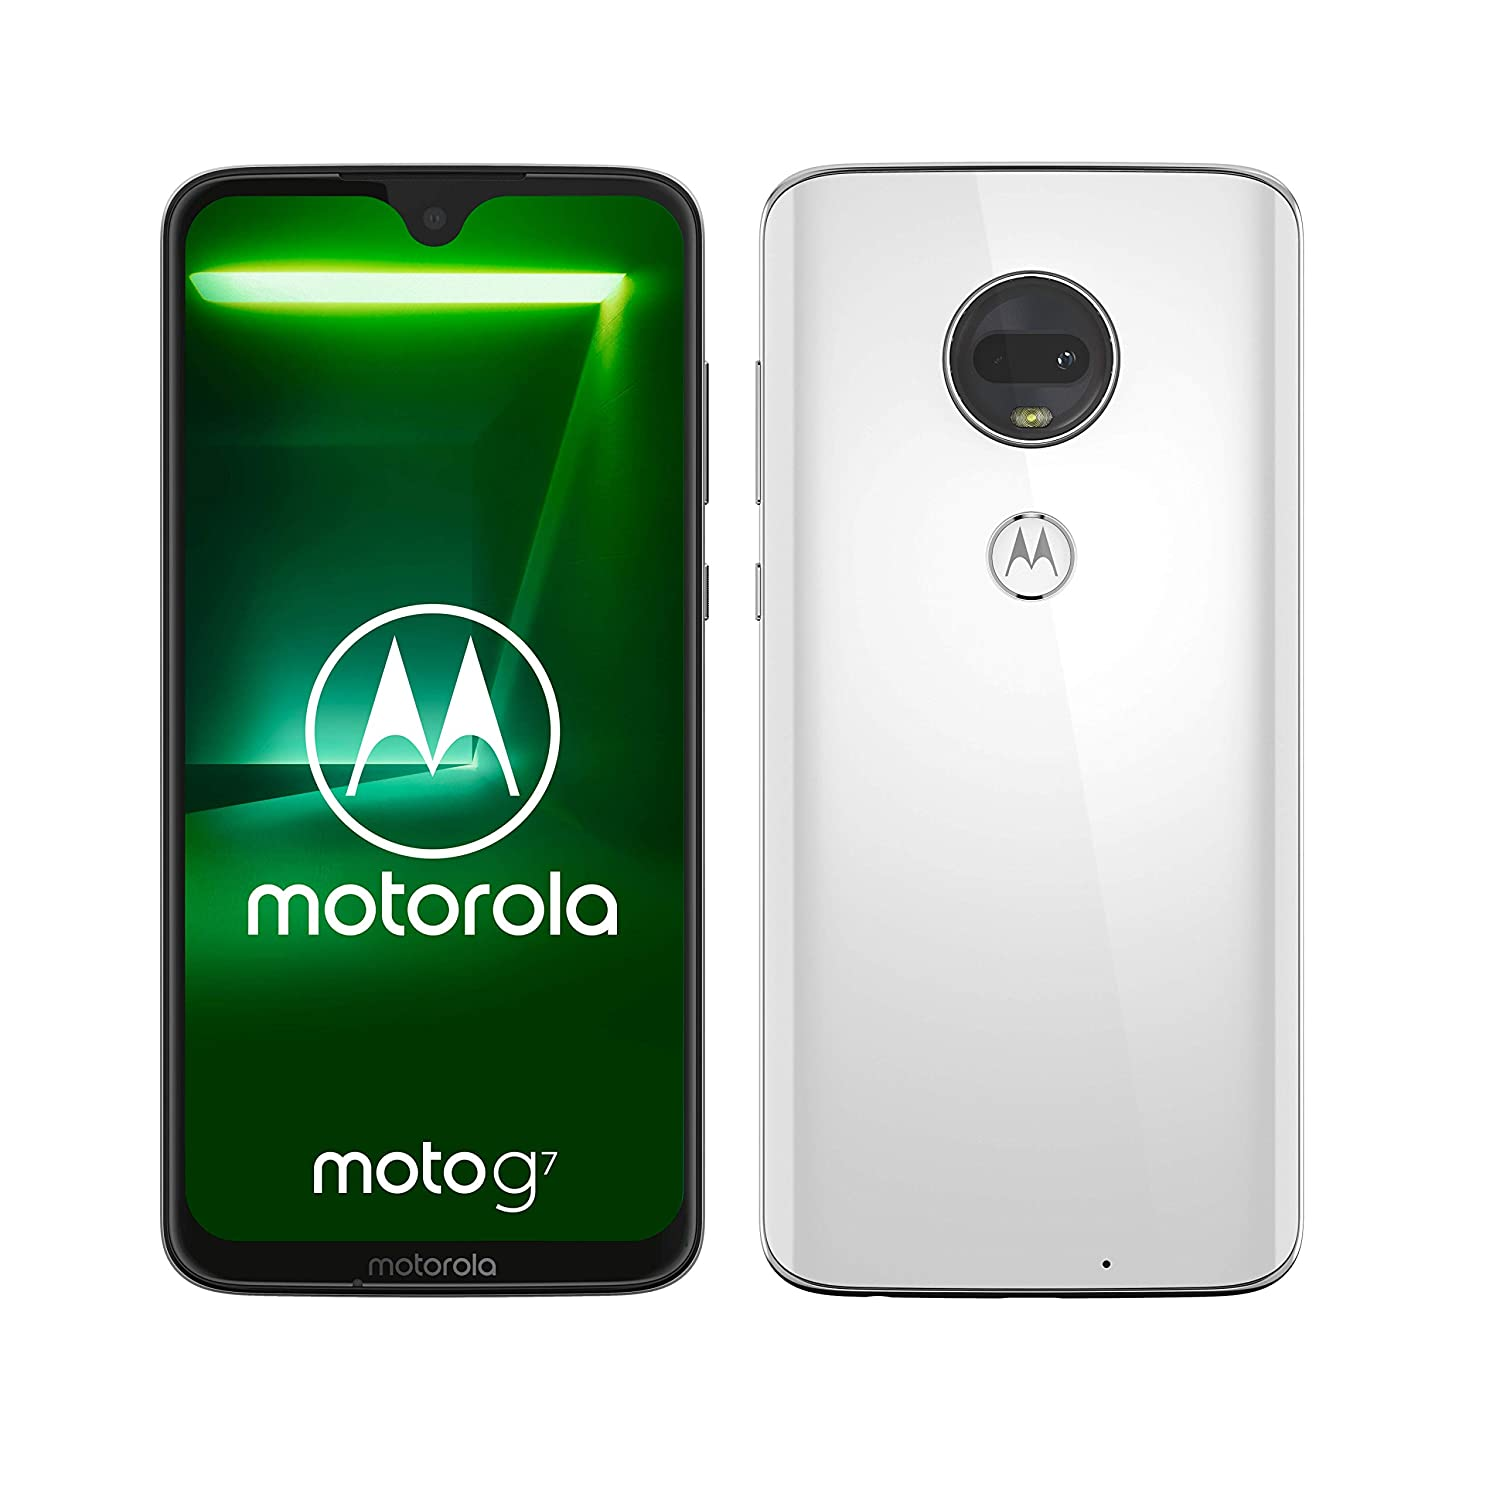 motorola moto g7 6 24-Inch Android 9 0 Pie UK Sim-Free Smartphone with 4GB  RAM and 64GB Storage (Dual Sim) – White (Exclusive to Amazon)